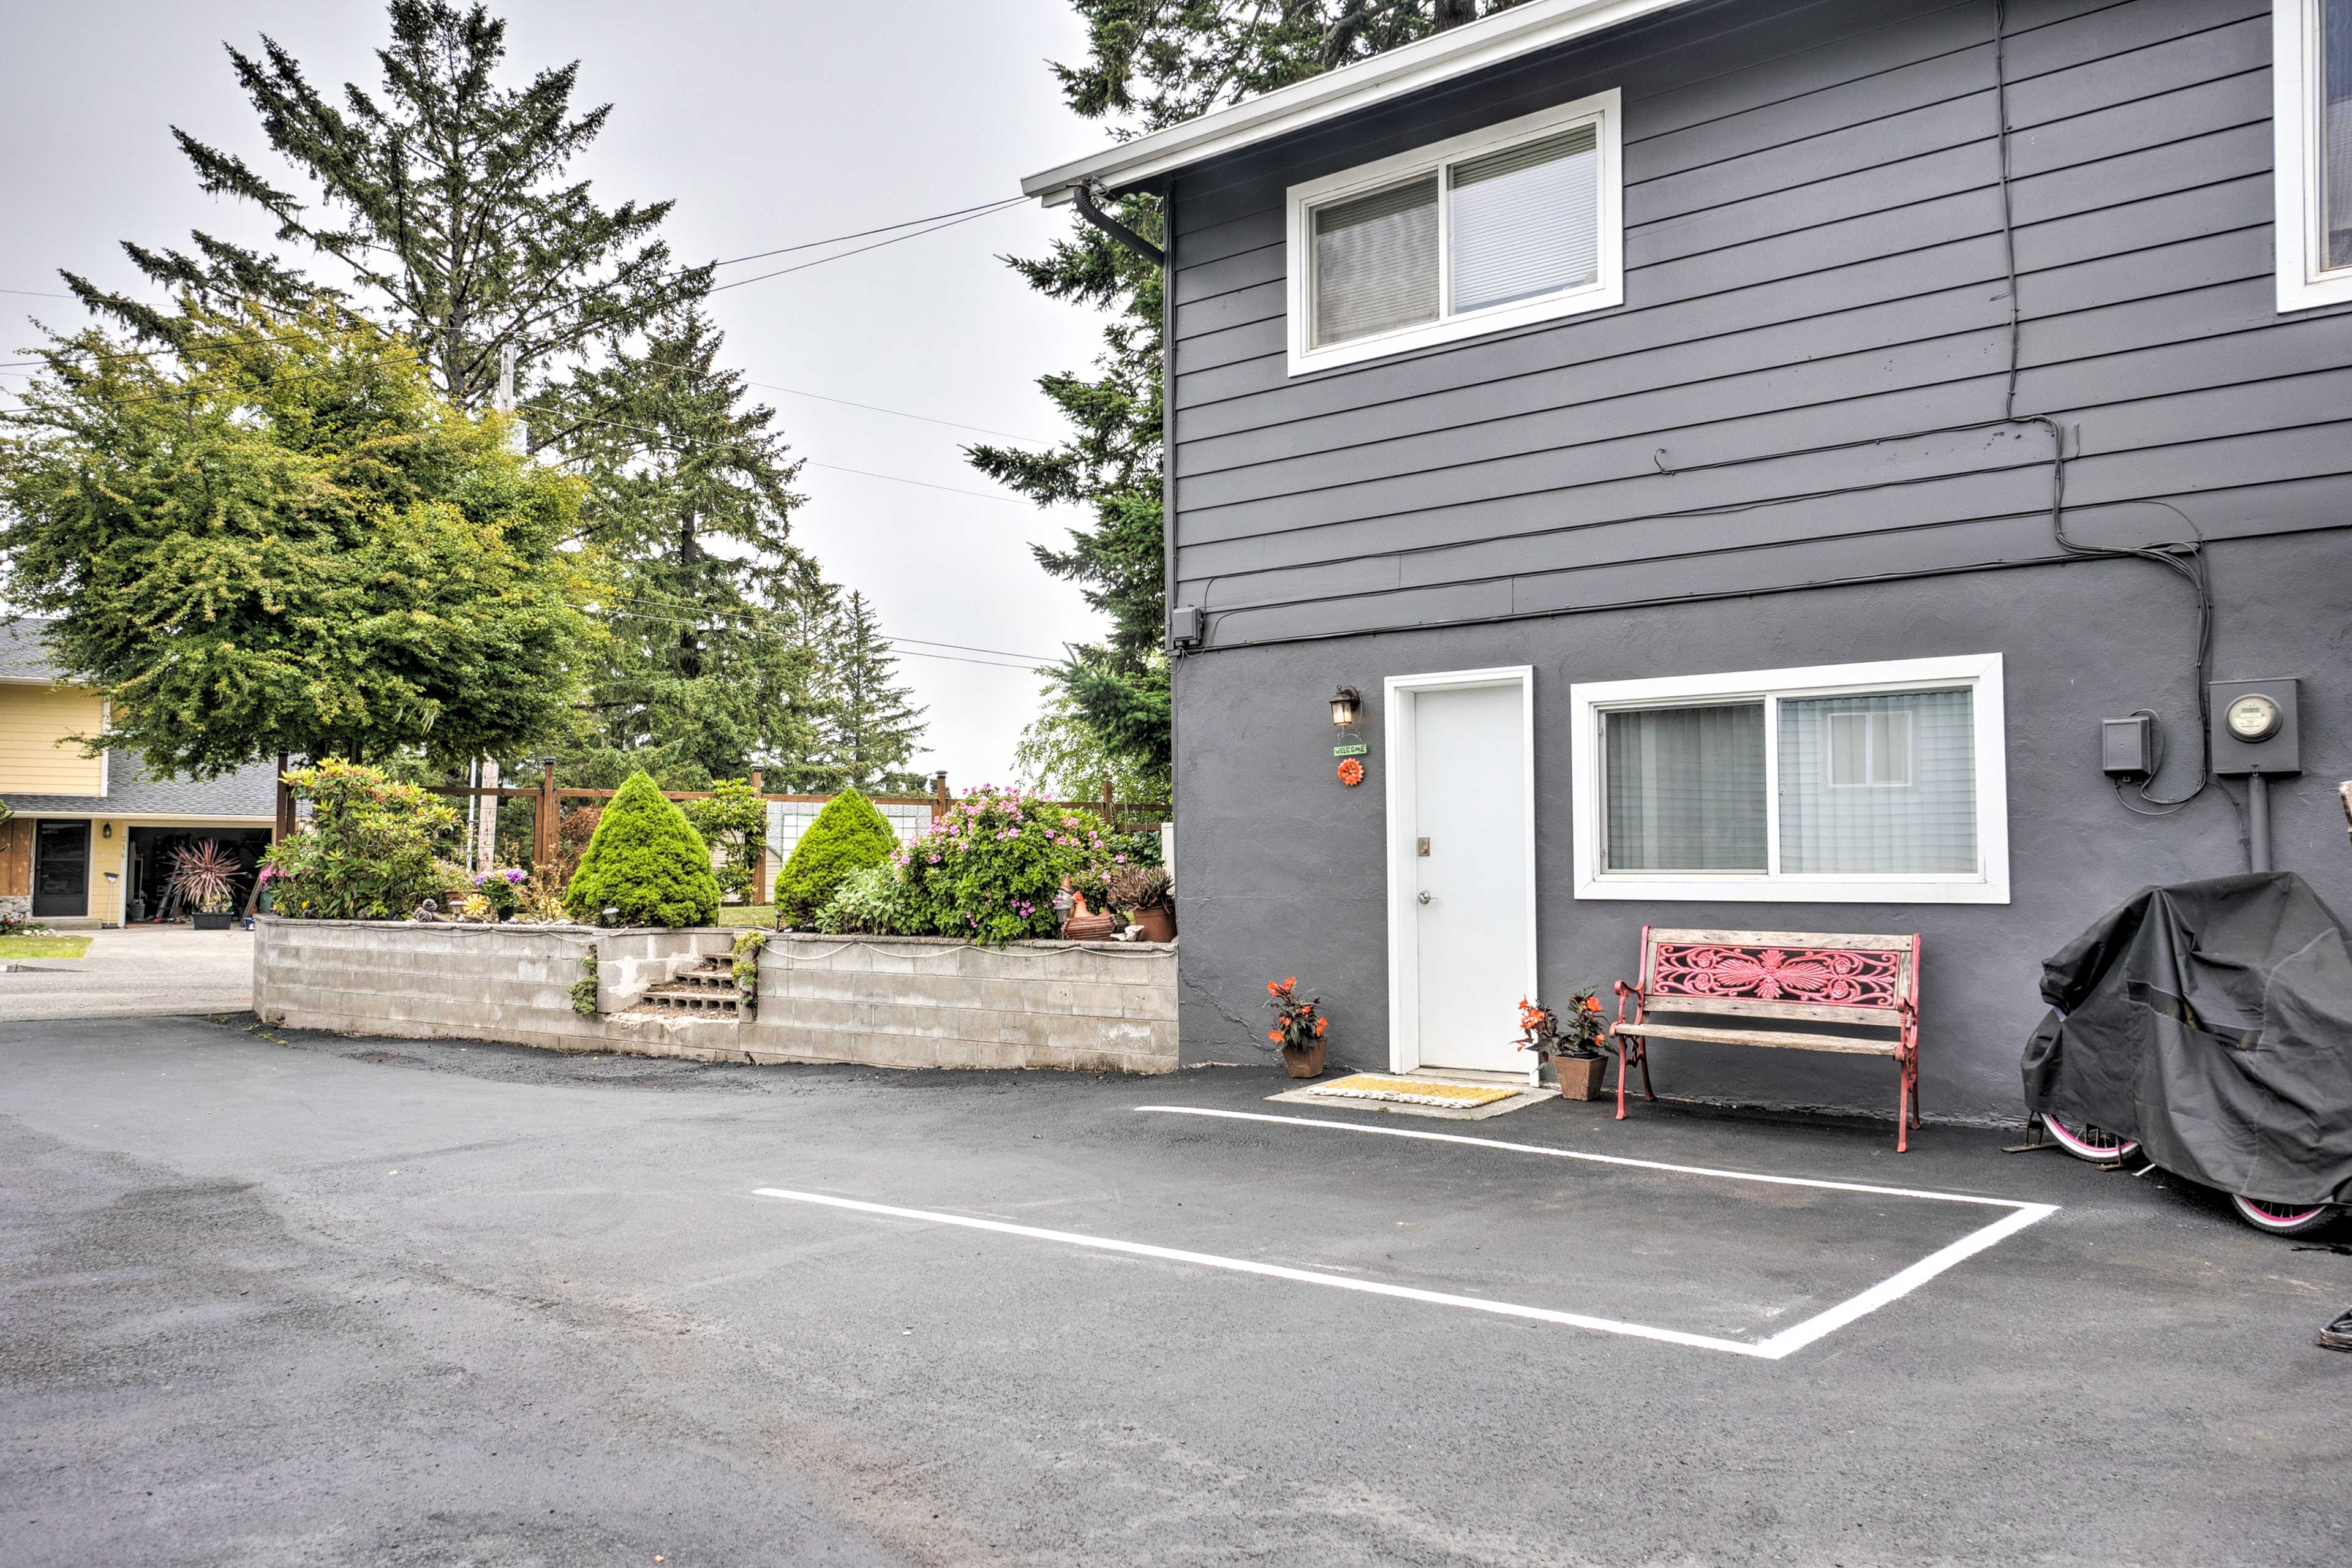 Outside offers a shared driveway with parking for 2.